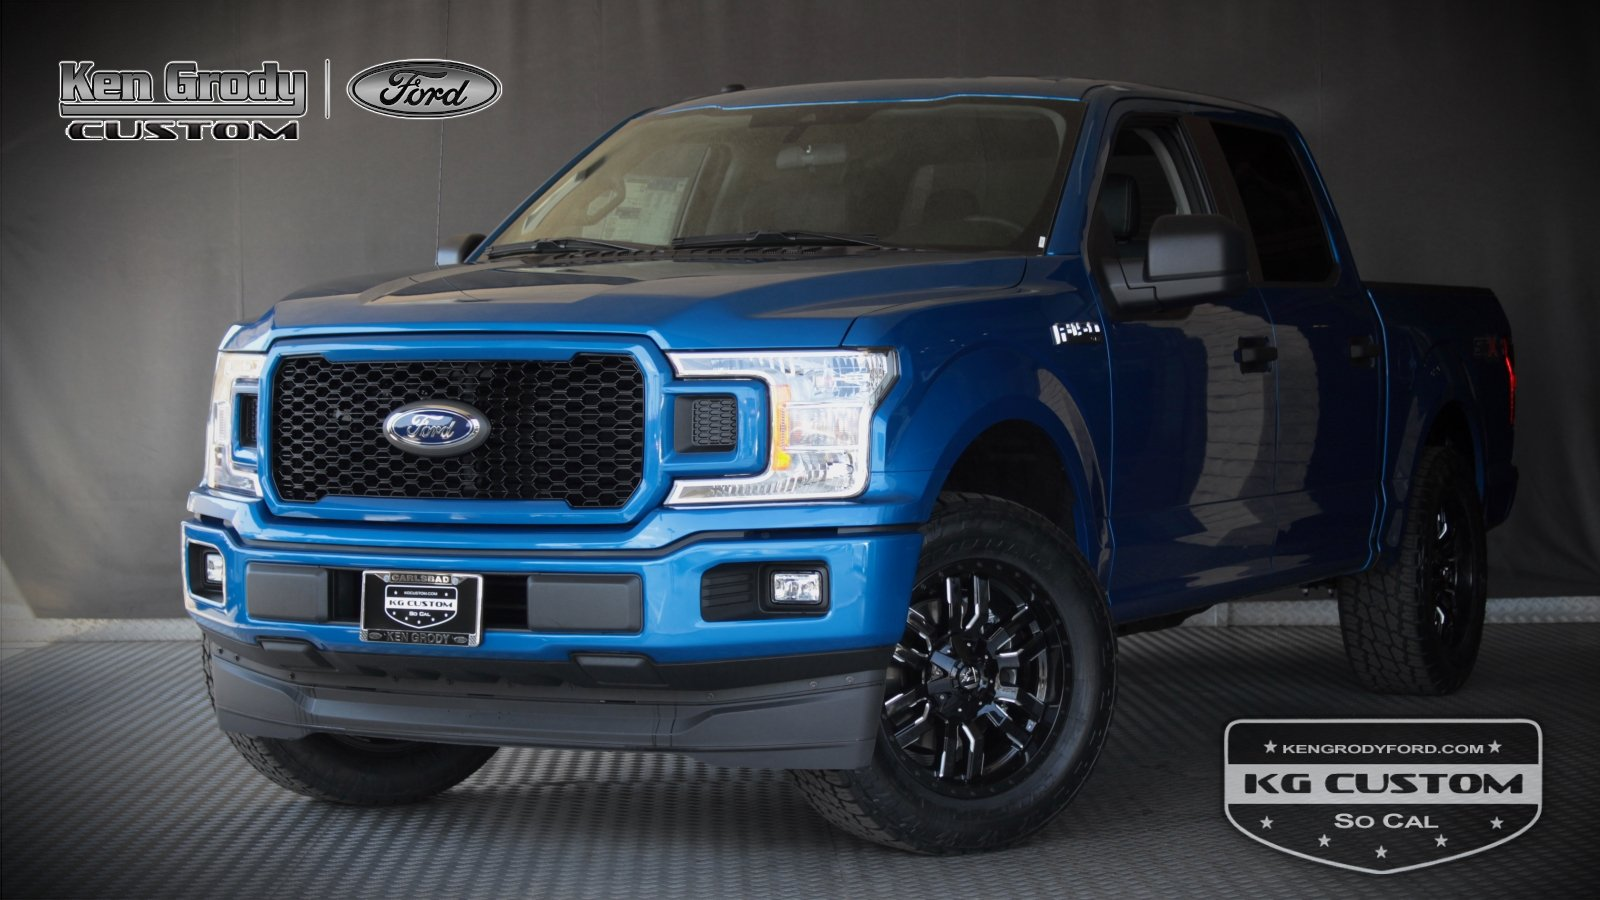 New 2019 Ford F-150 KG CUSTOM